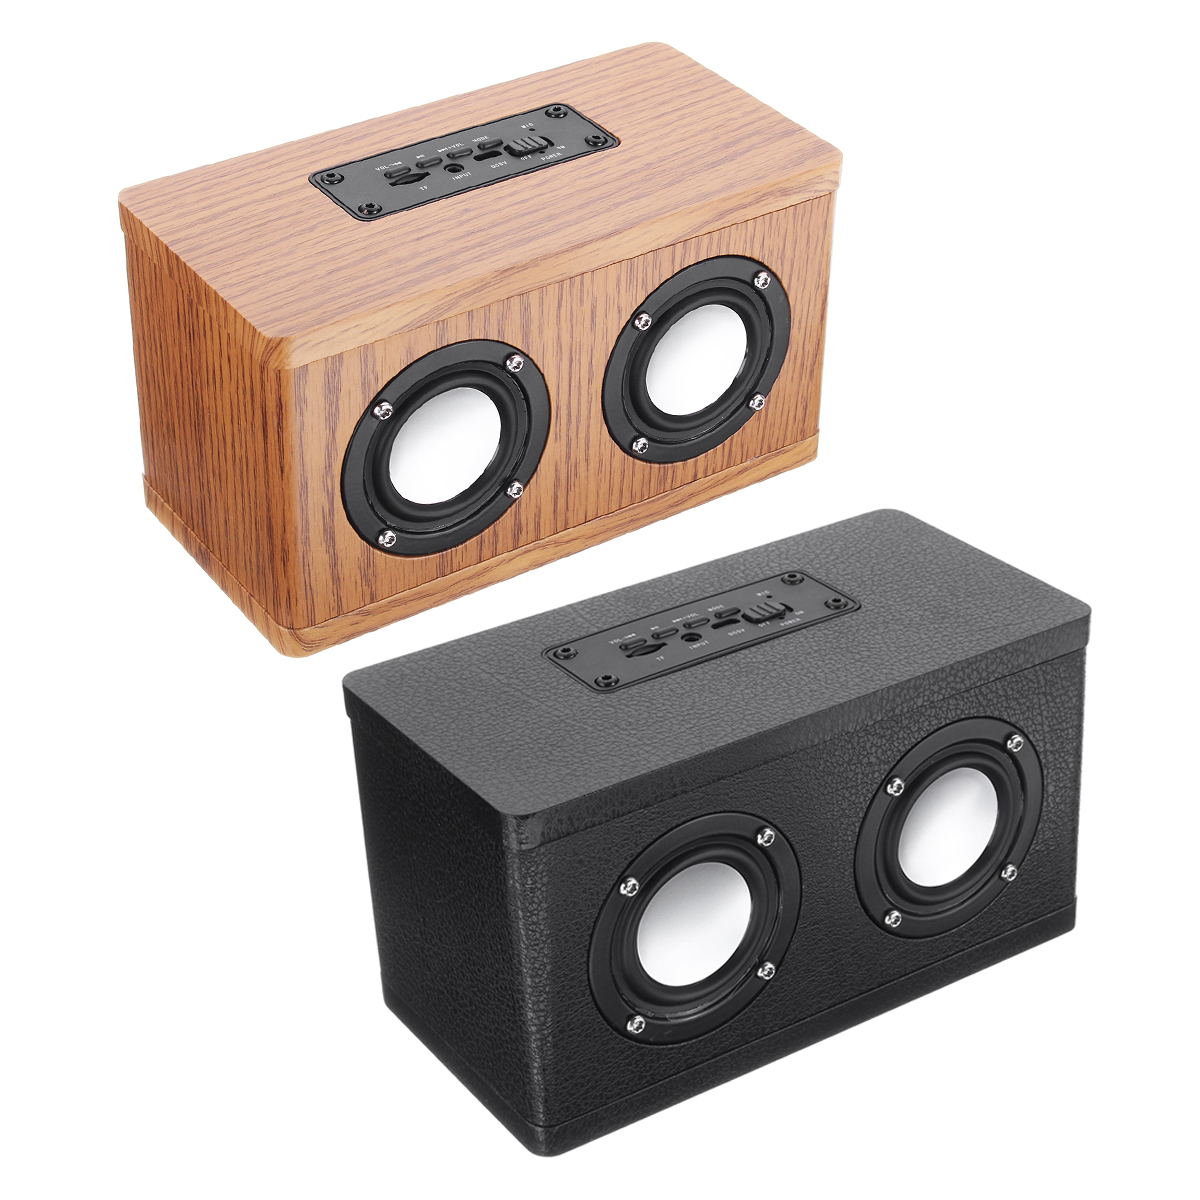 W10 Wood bluetooth Wireless Sound Grain Portable Speaker 12W Support TF Card AUX